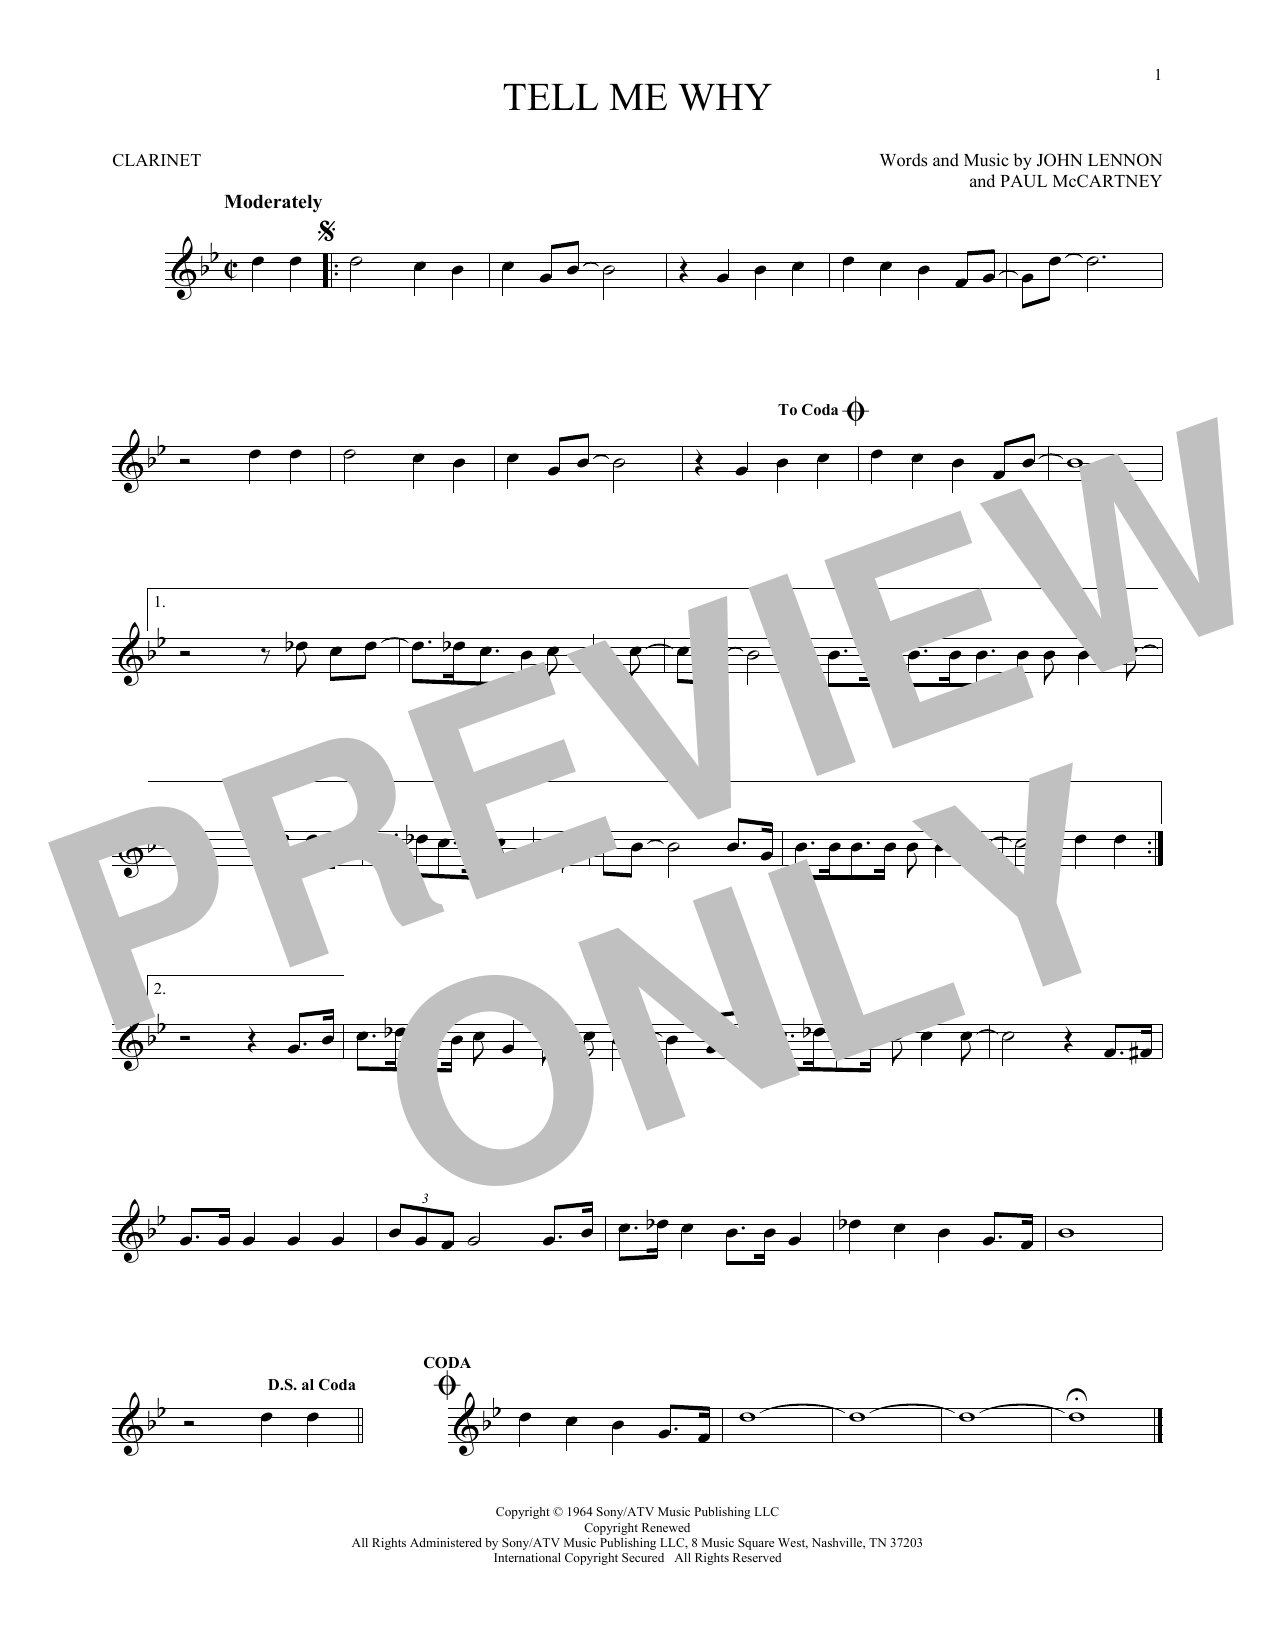 Tell Me Why (Clarinet Solo)